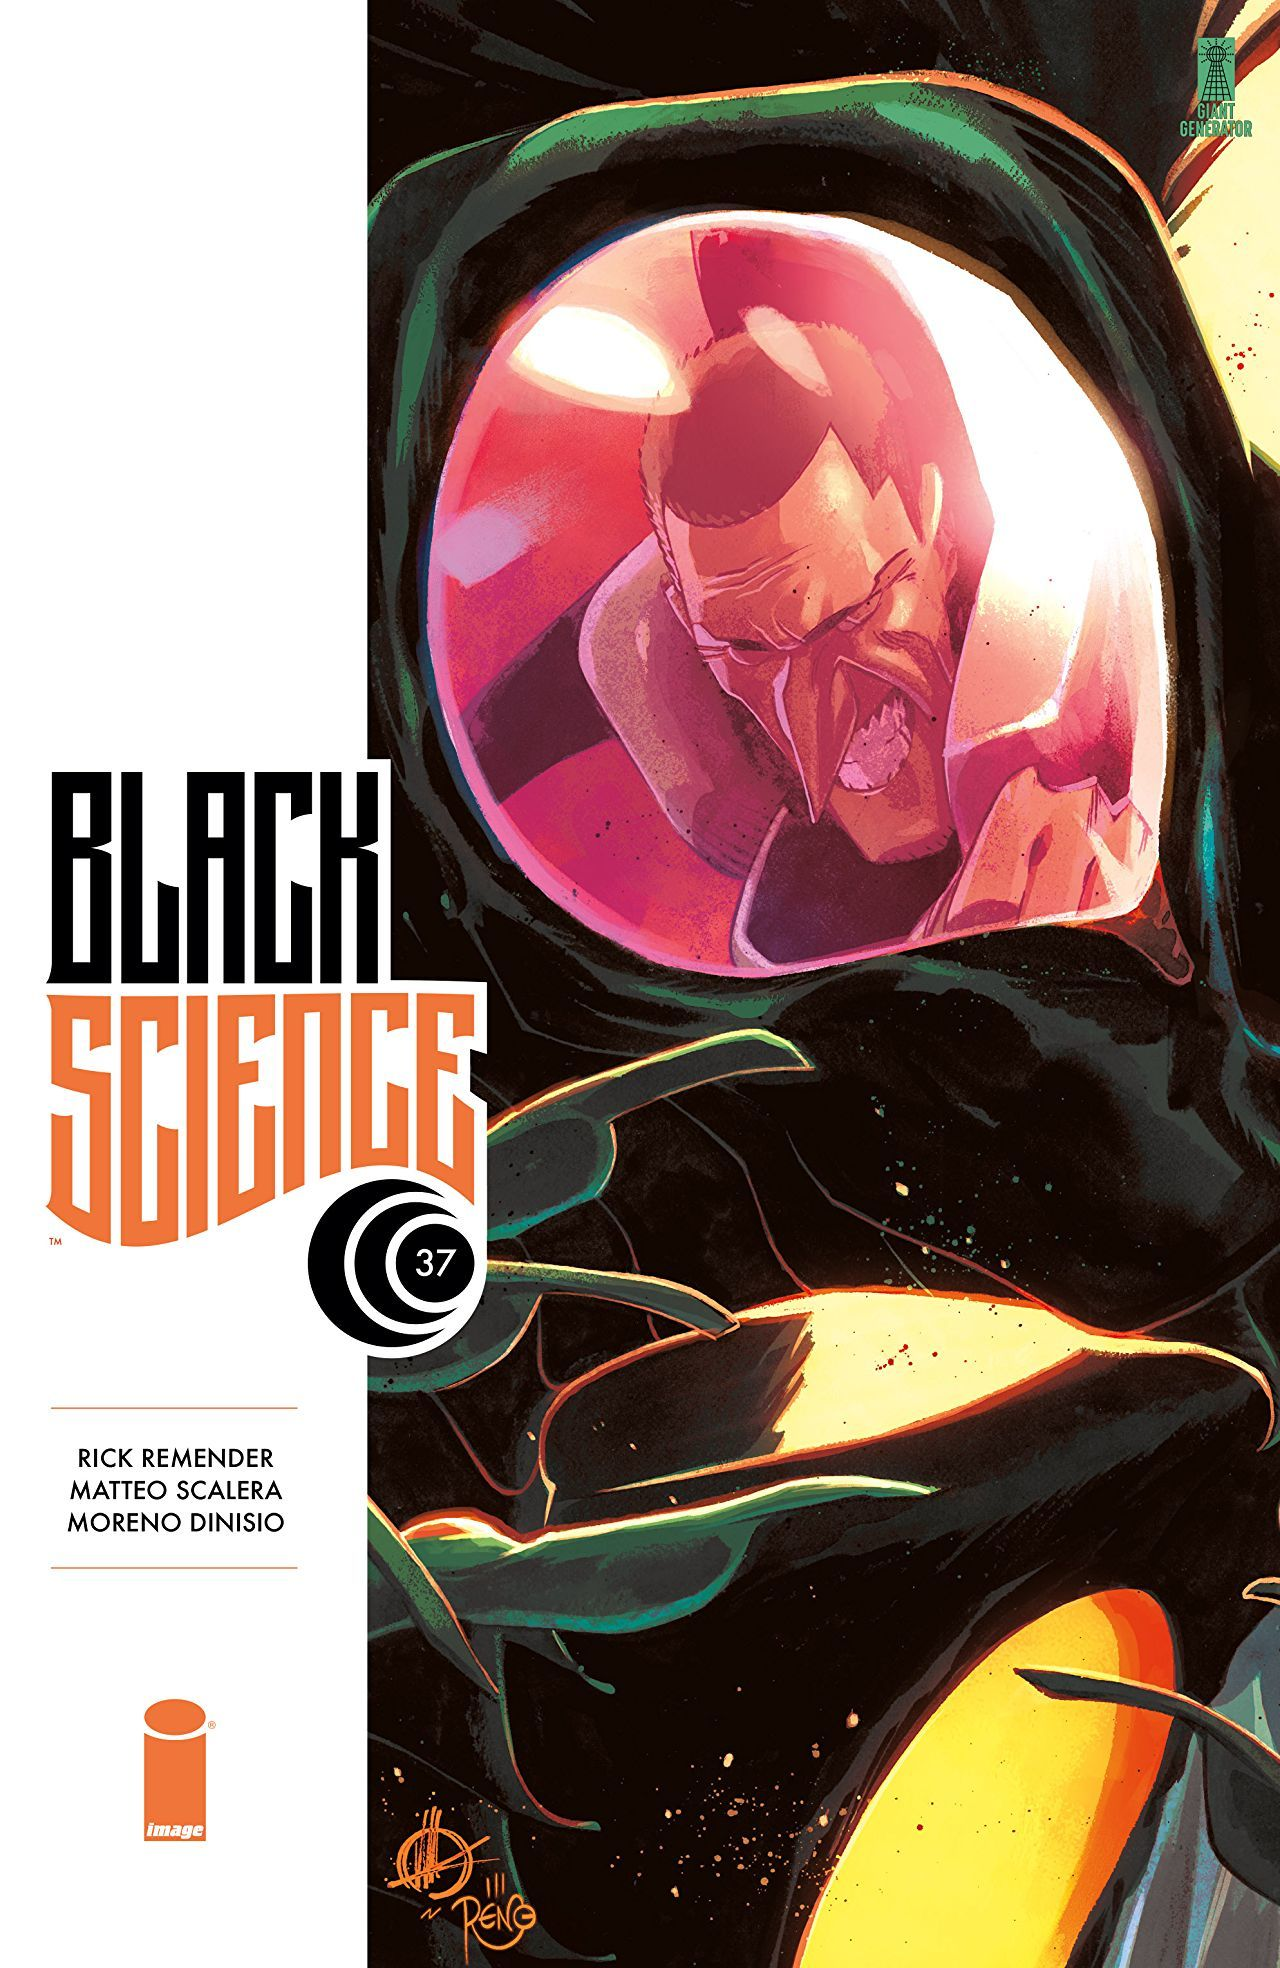 Black Science #37 from Image Comics.